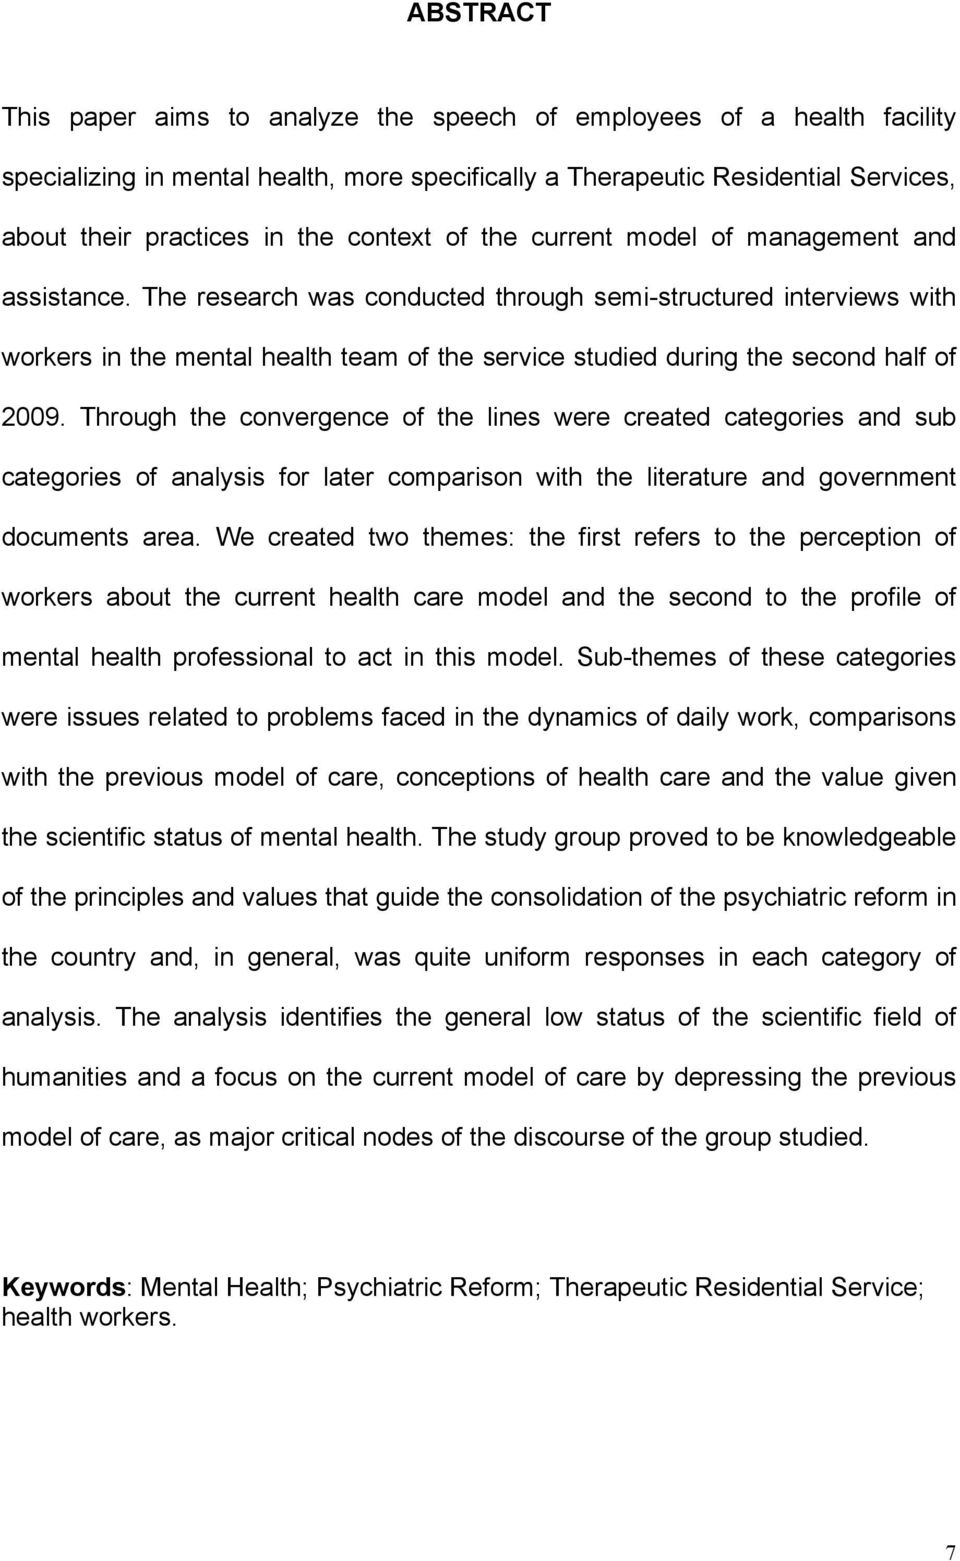 The research was conducted through semi-structured interviews with workers in the mental health team of the service studied during the second half of 2009.